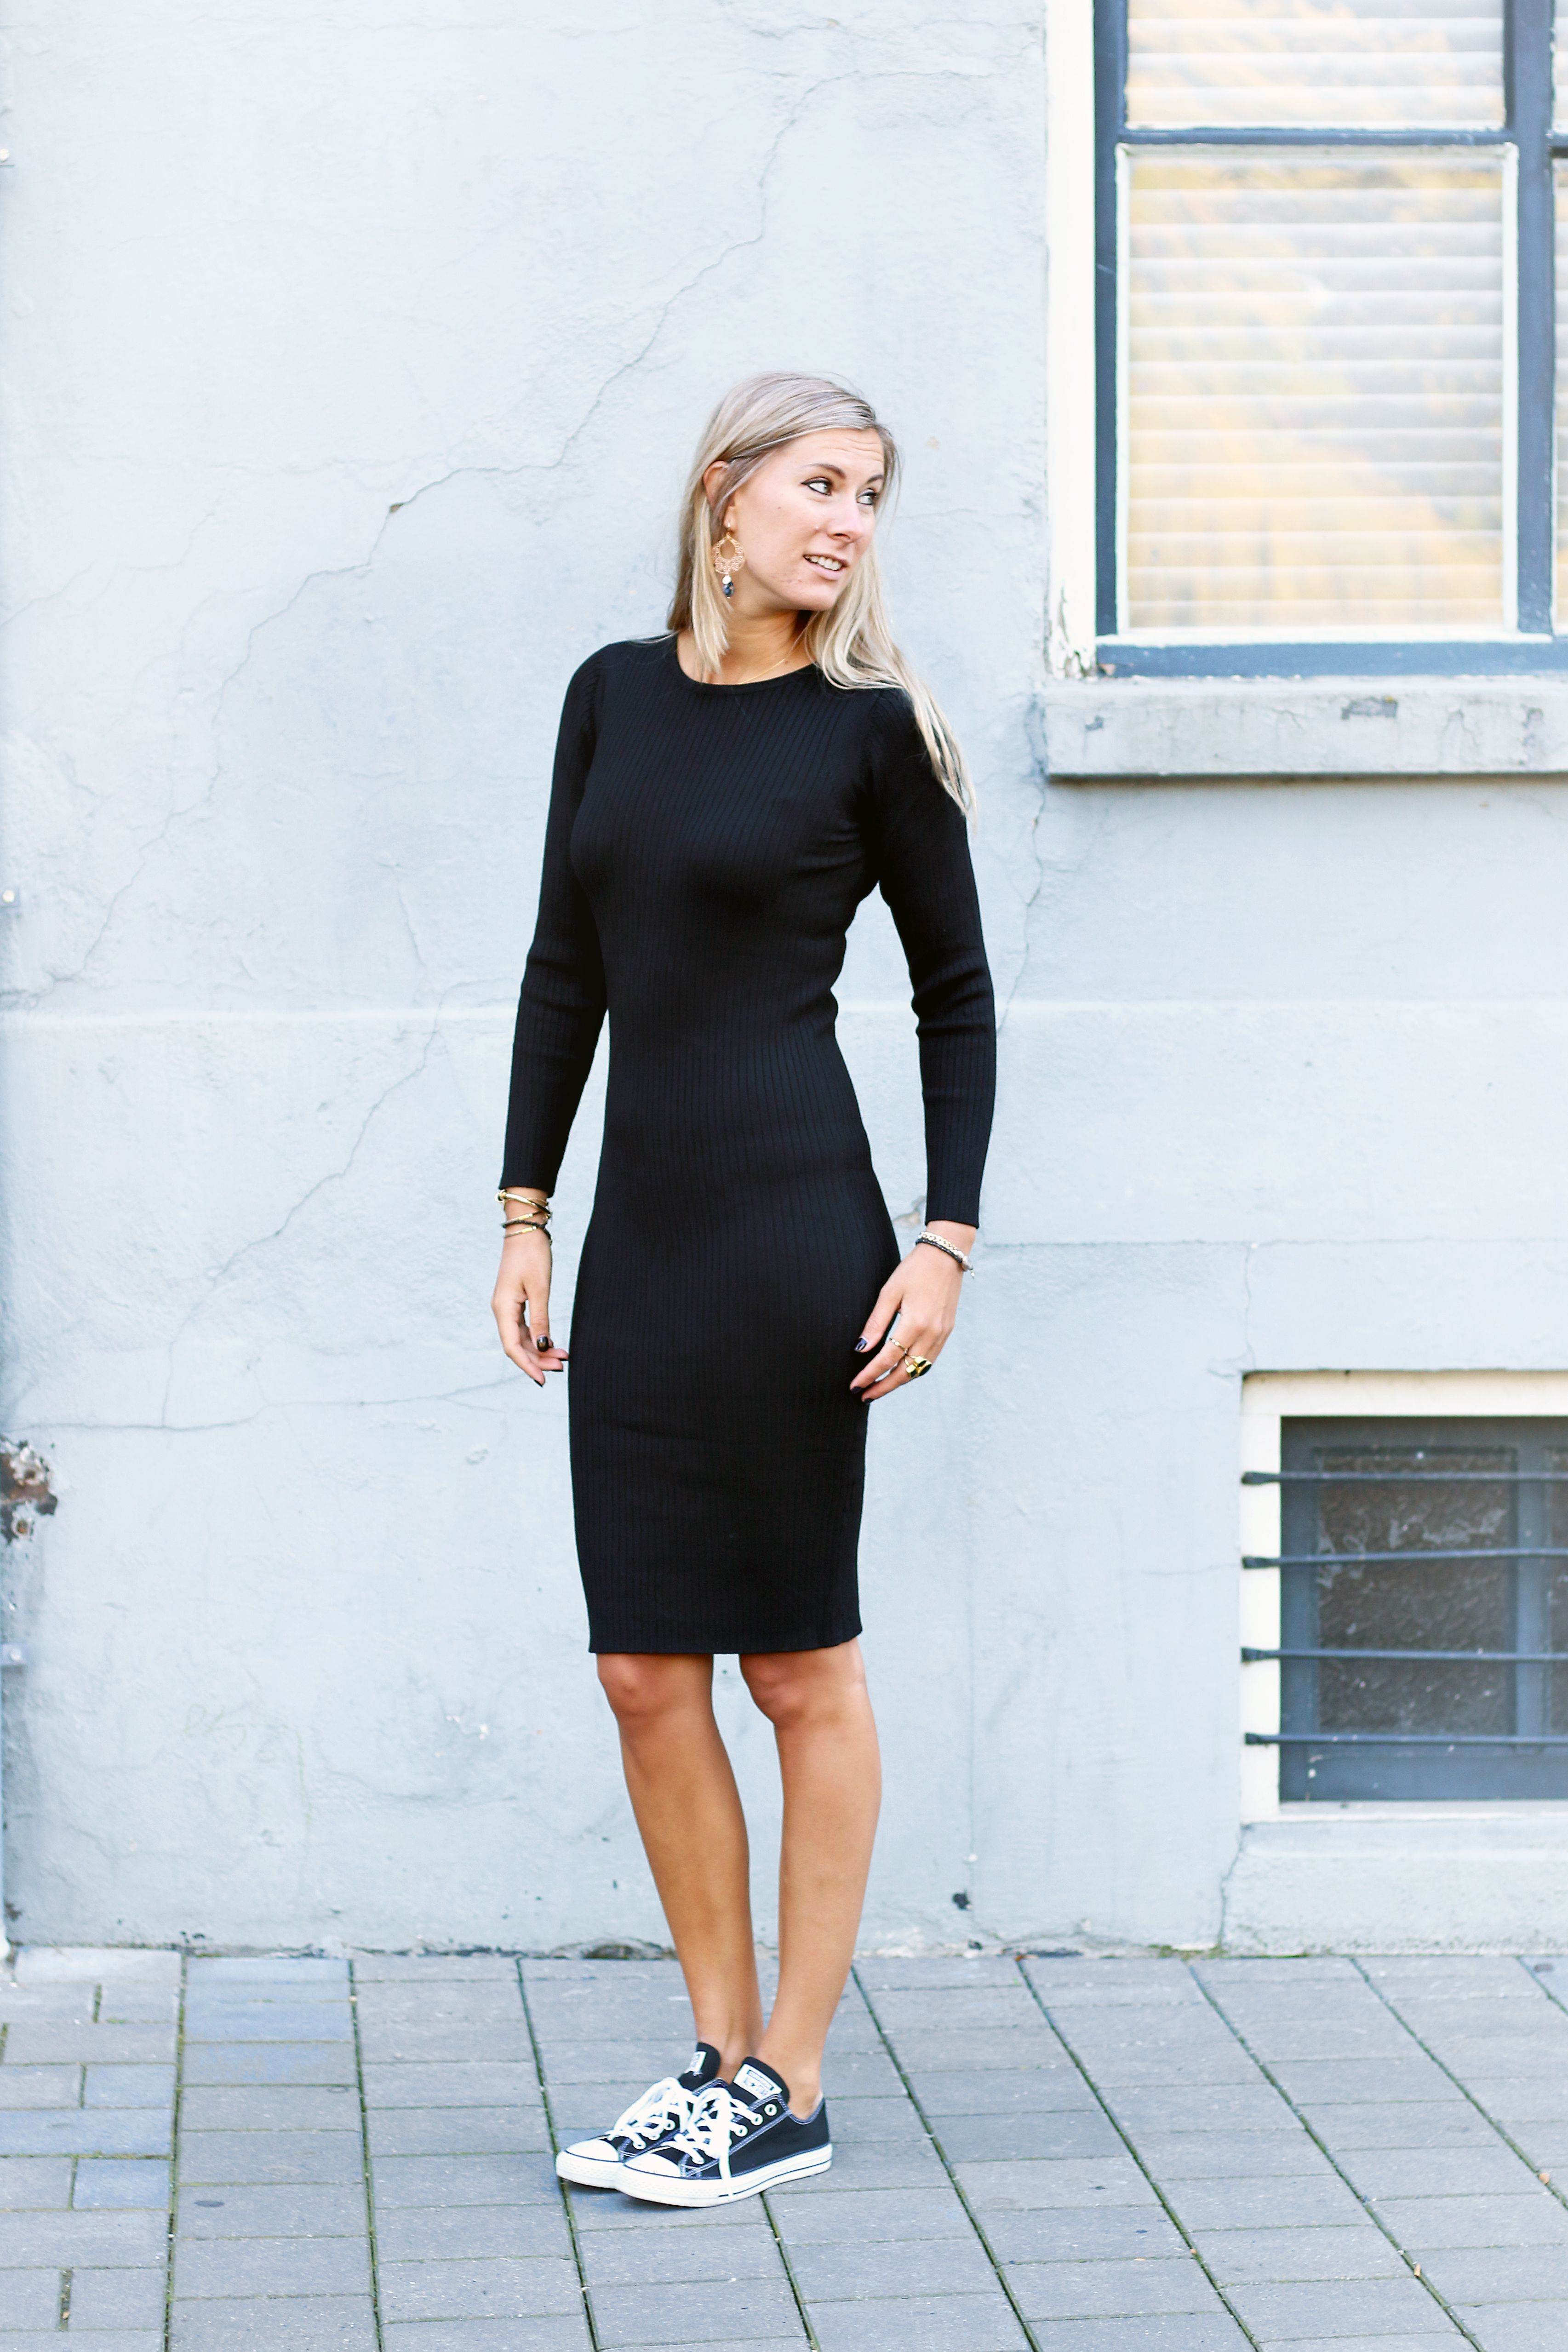 Classic black dress with sneakers, chuck taylors with dress, how to wear  black, LBD ideas, cute summer outfits